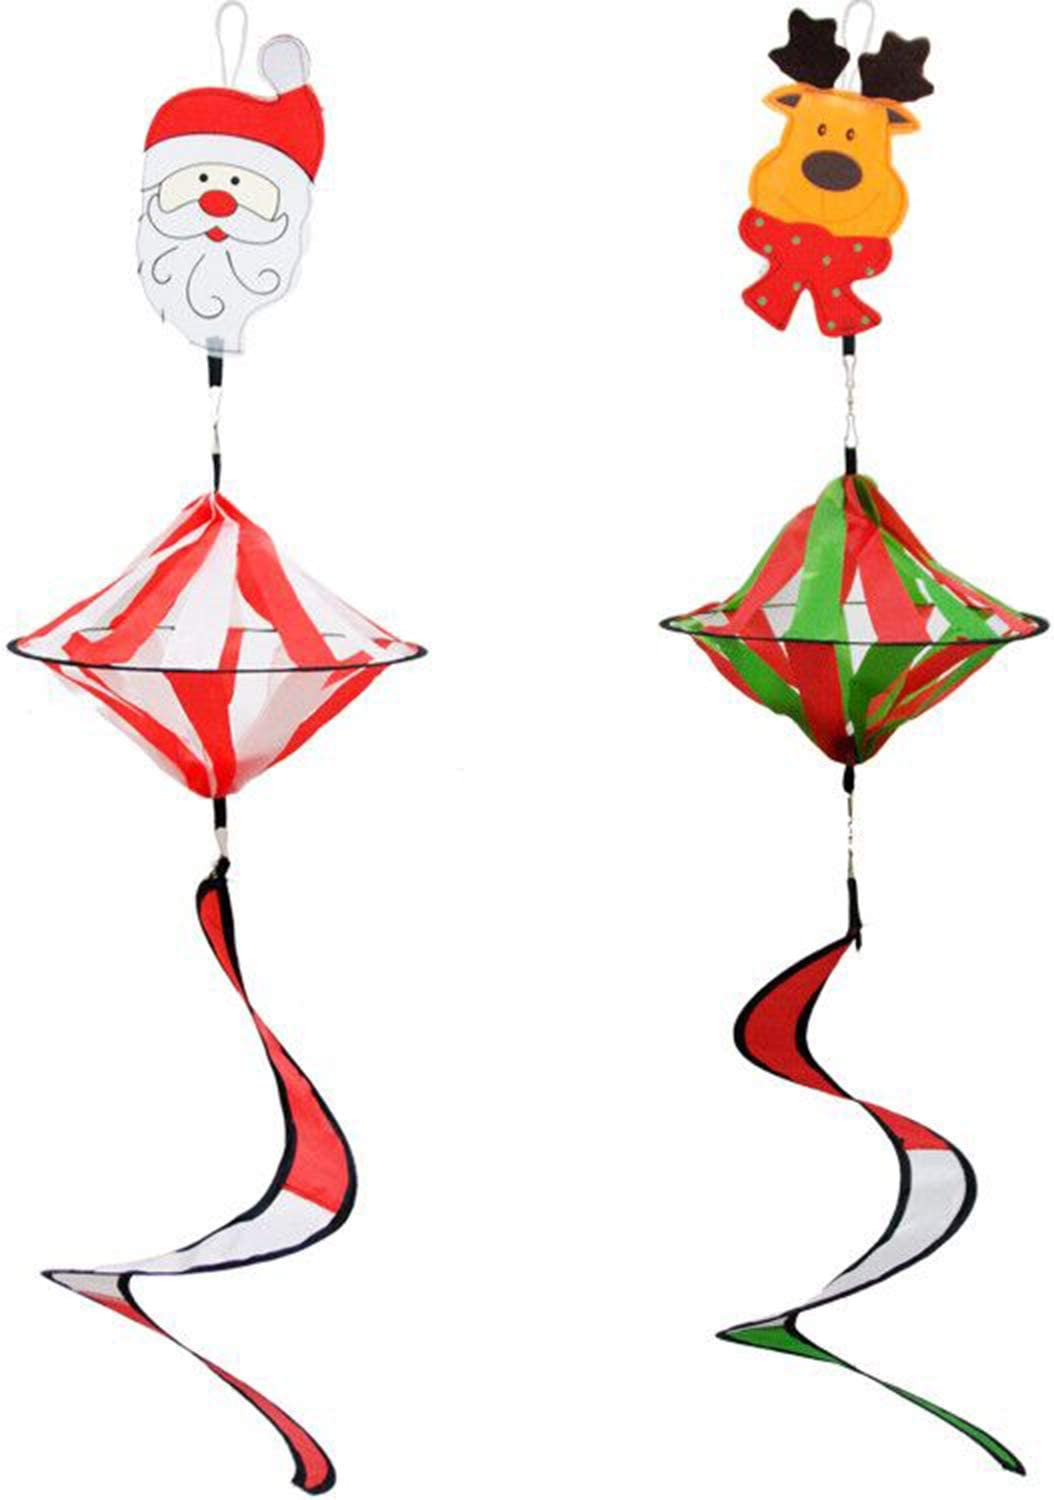 Alpurple 2 PCS 35 Inch Christmas Wind Spinner Twister Decoration -Xmas Hanging Curlie Spinner with Spiral Curlie Tail for Garden,Yard Outdoor Indoor Decoration